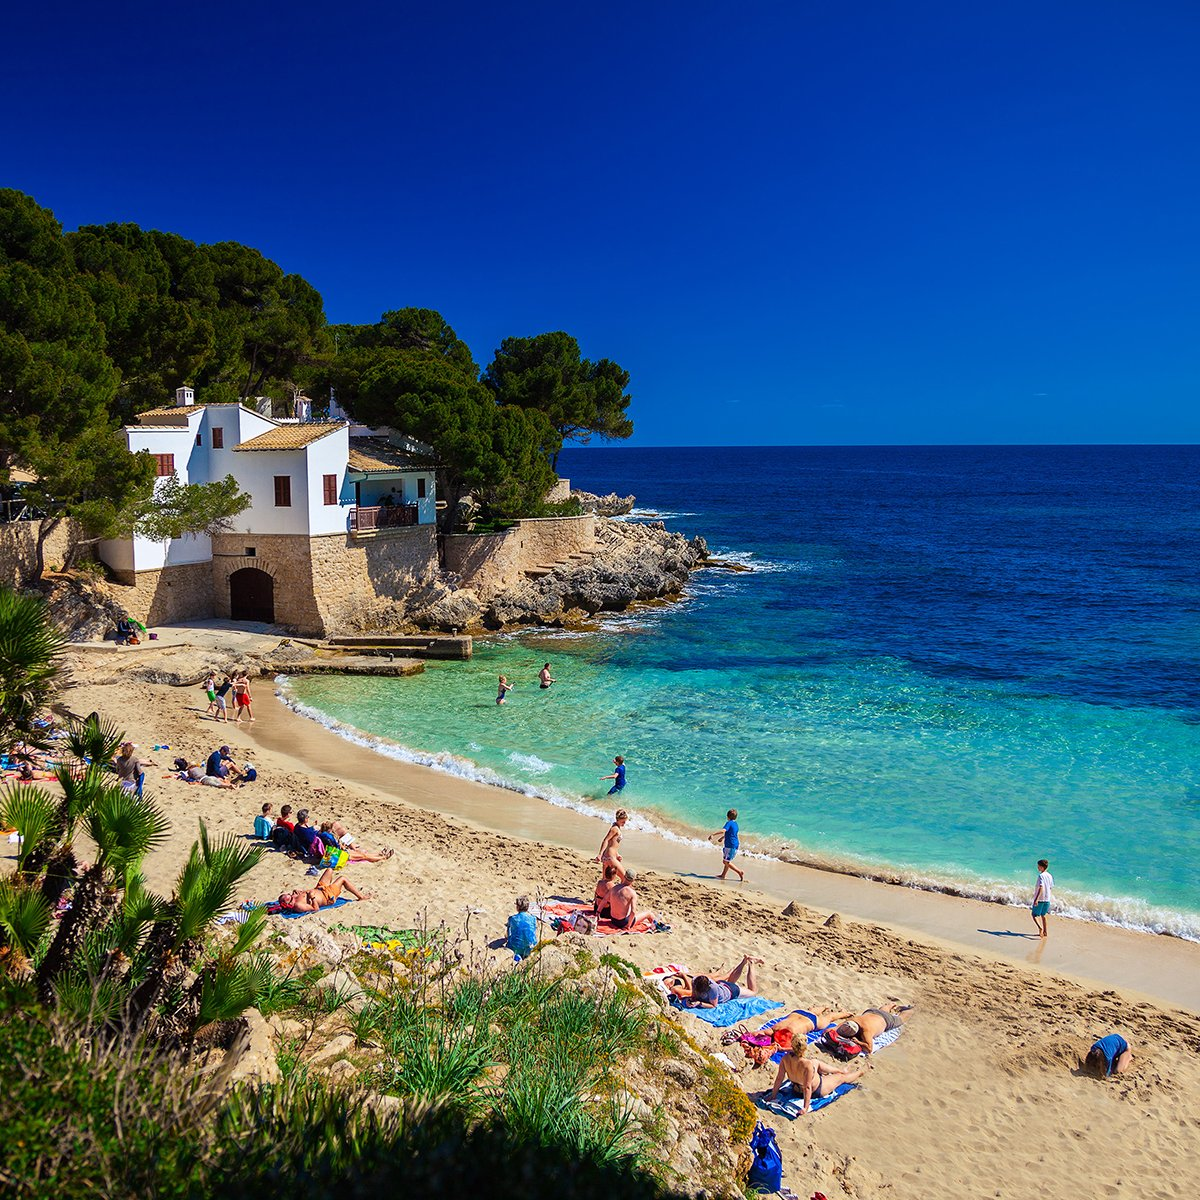 Free next week? Head to Majorca this Sunday with @BarrheadTravel from £447pp all inclusive!